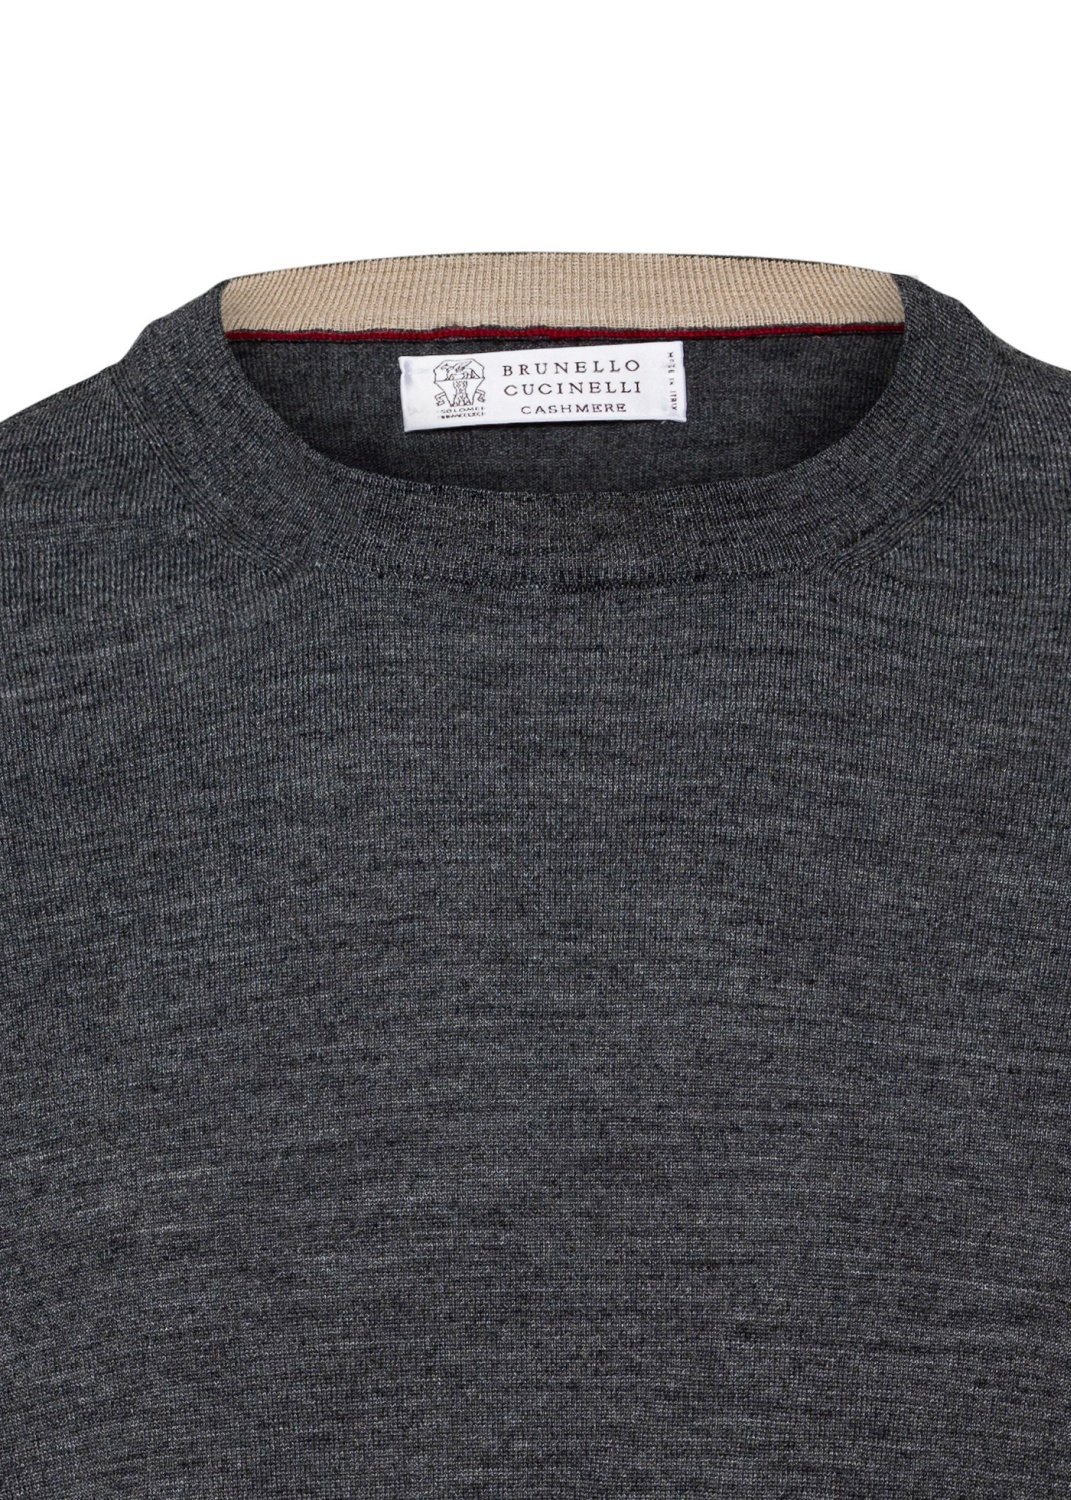 GIROCOLLO M/L - Pullover image number 2